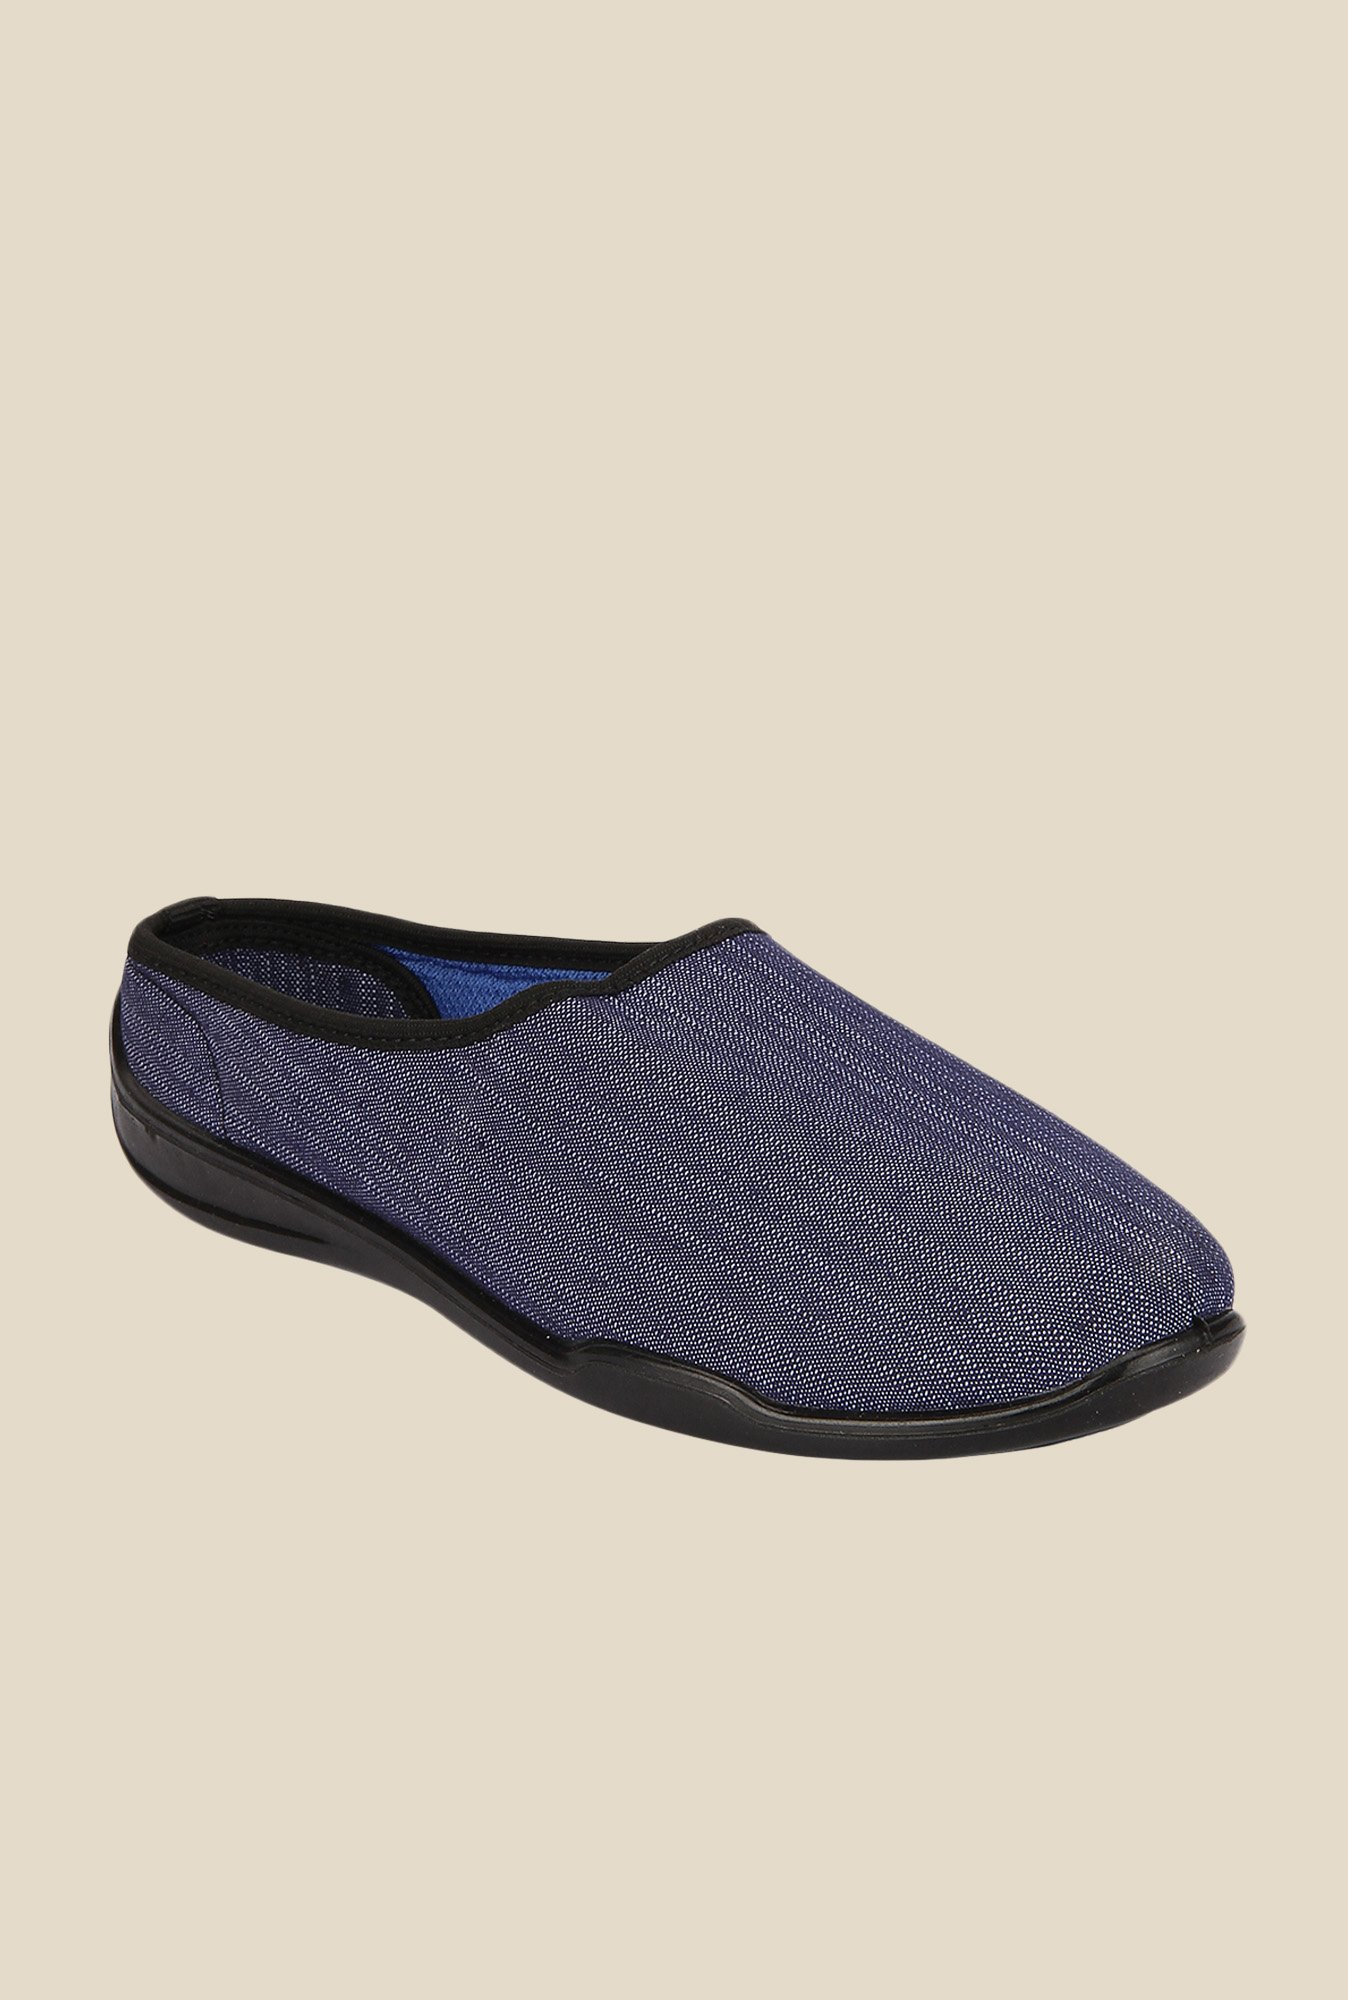 Yepme Navy Mule Shoes